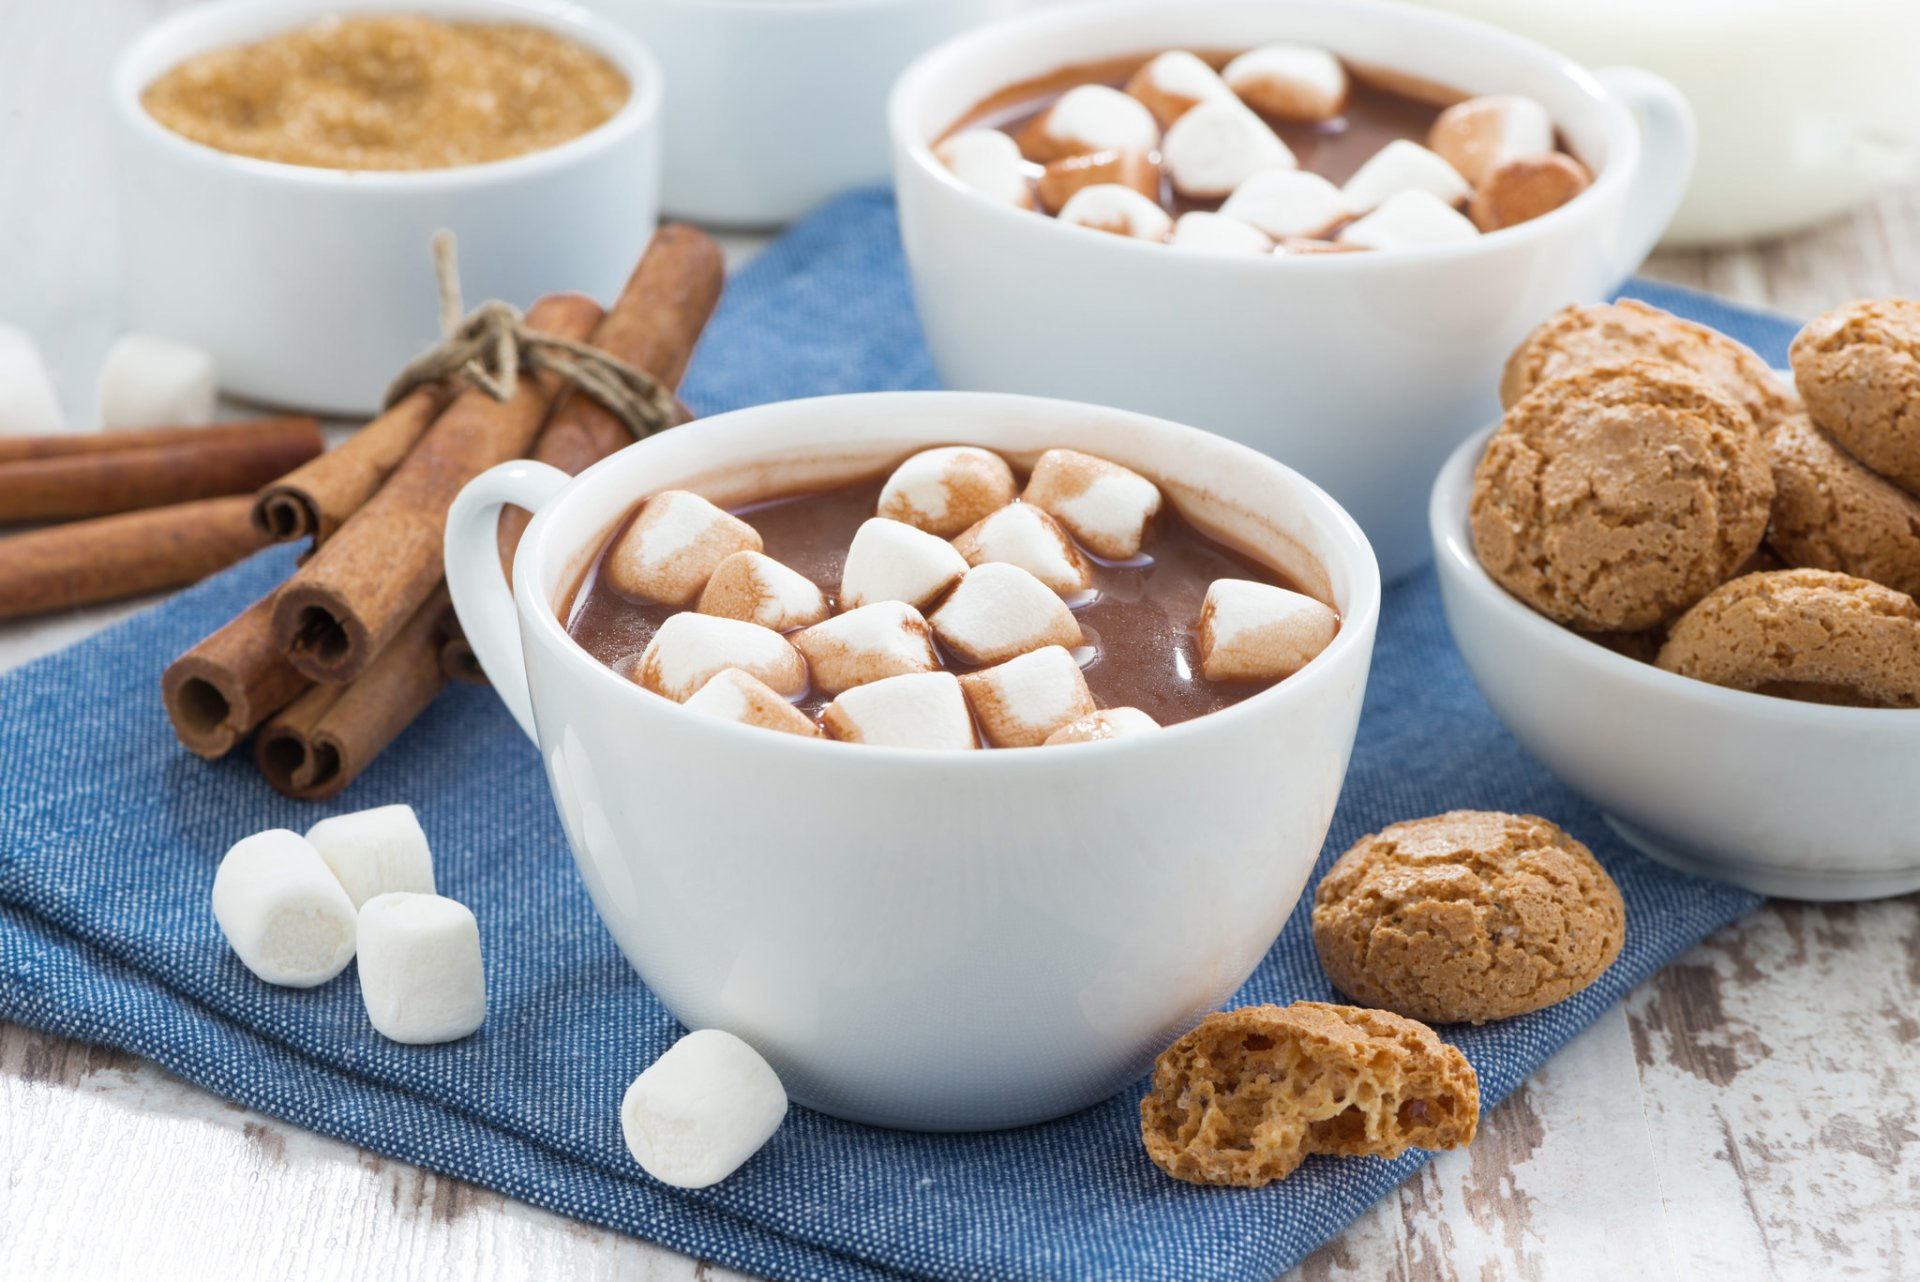 Food - Hot Chocolate  Cup Marshmallow Cookie Cinnamon Wallpaper